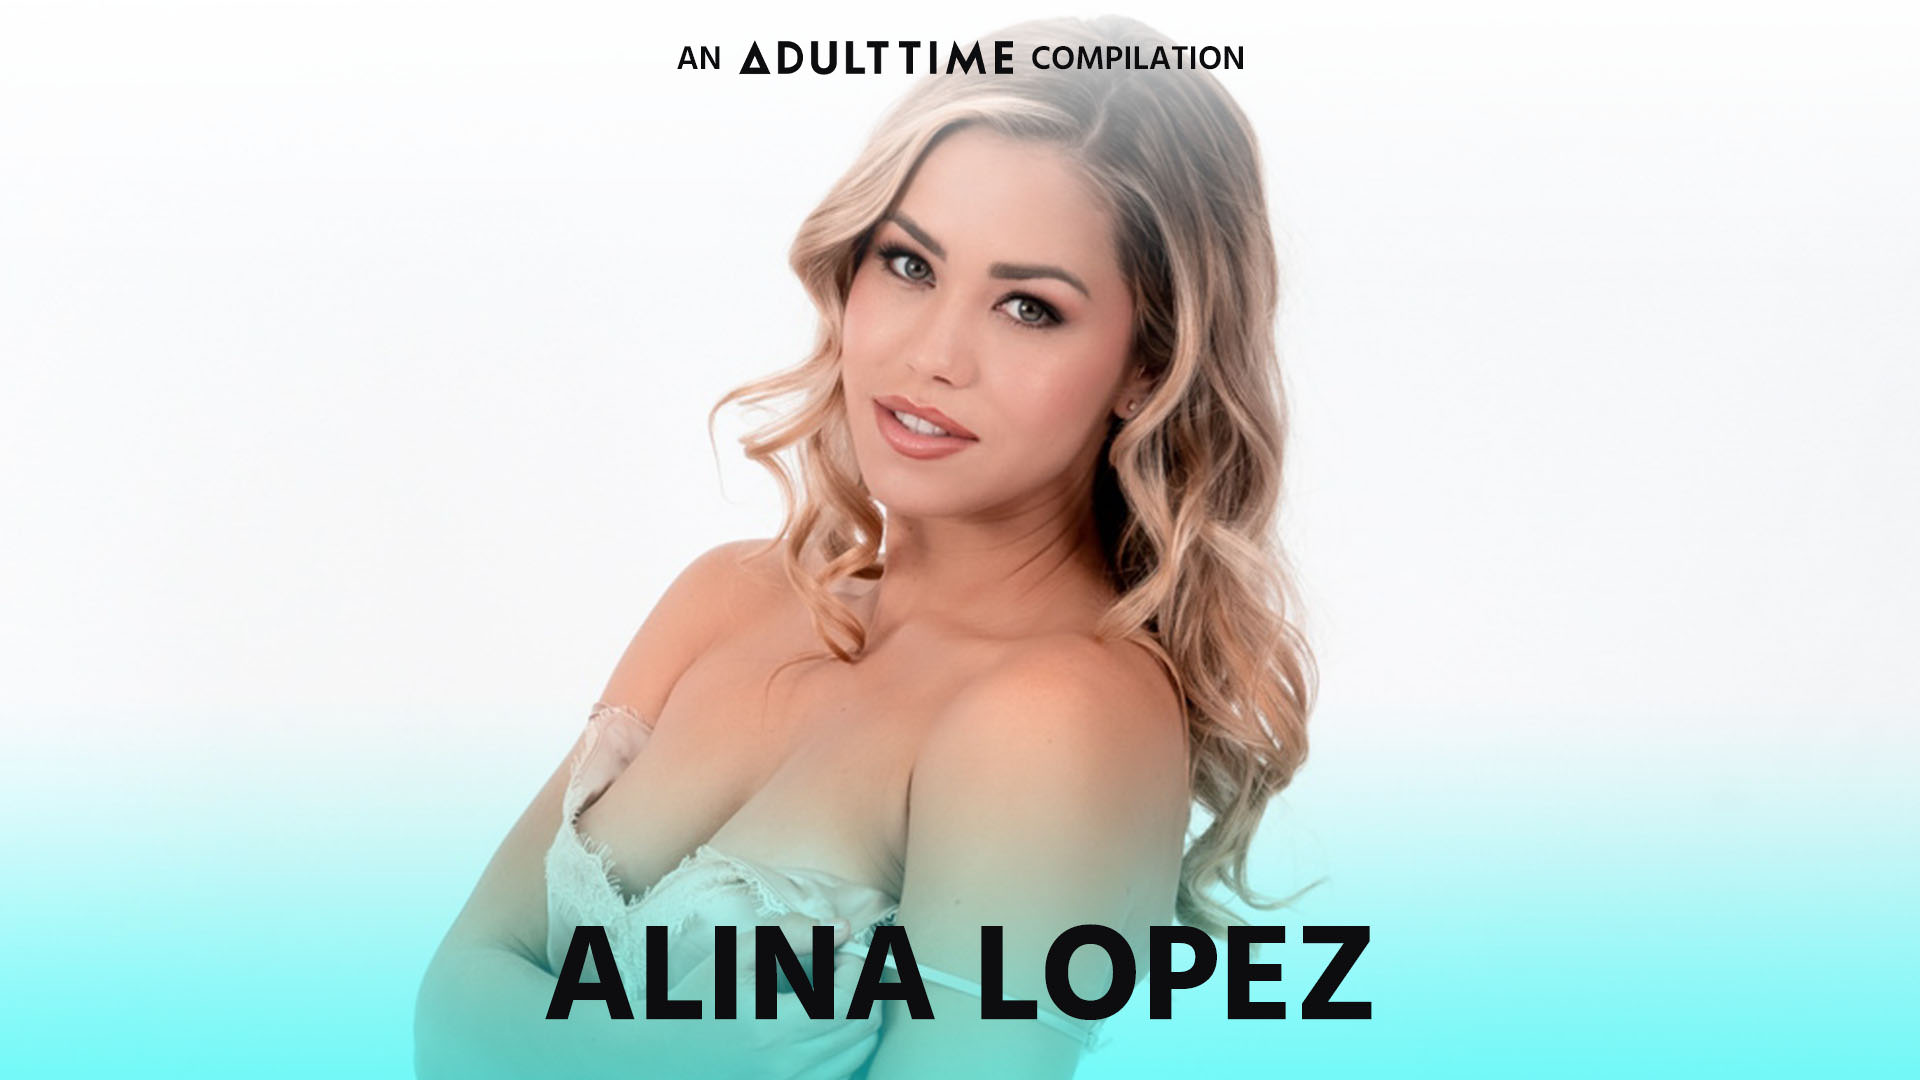 Alina Lopez - An Adult Time Compilation - Alina Lopez 1